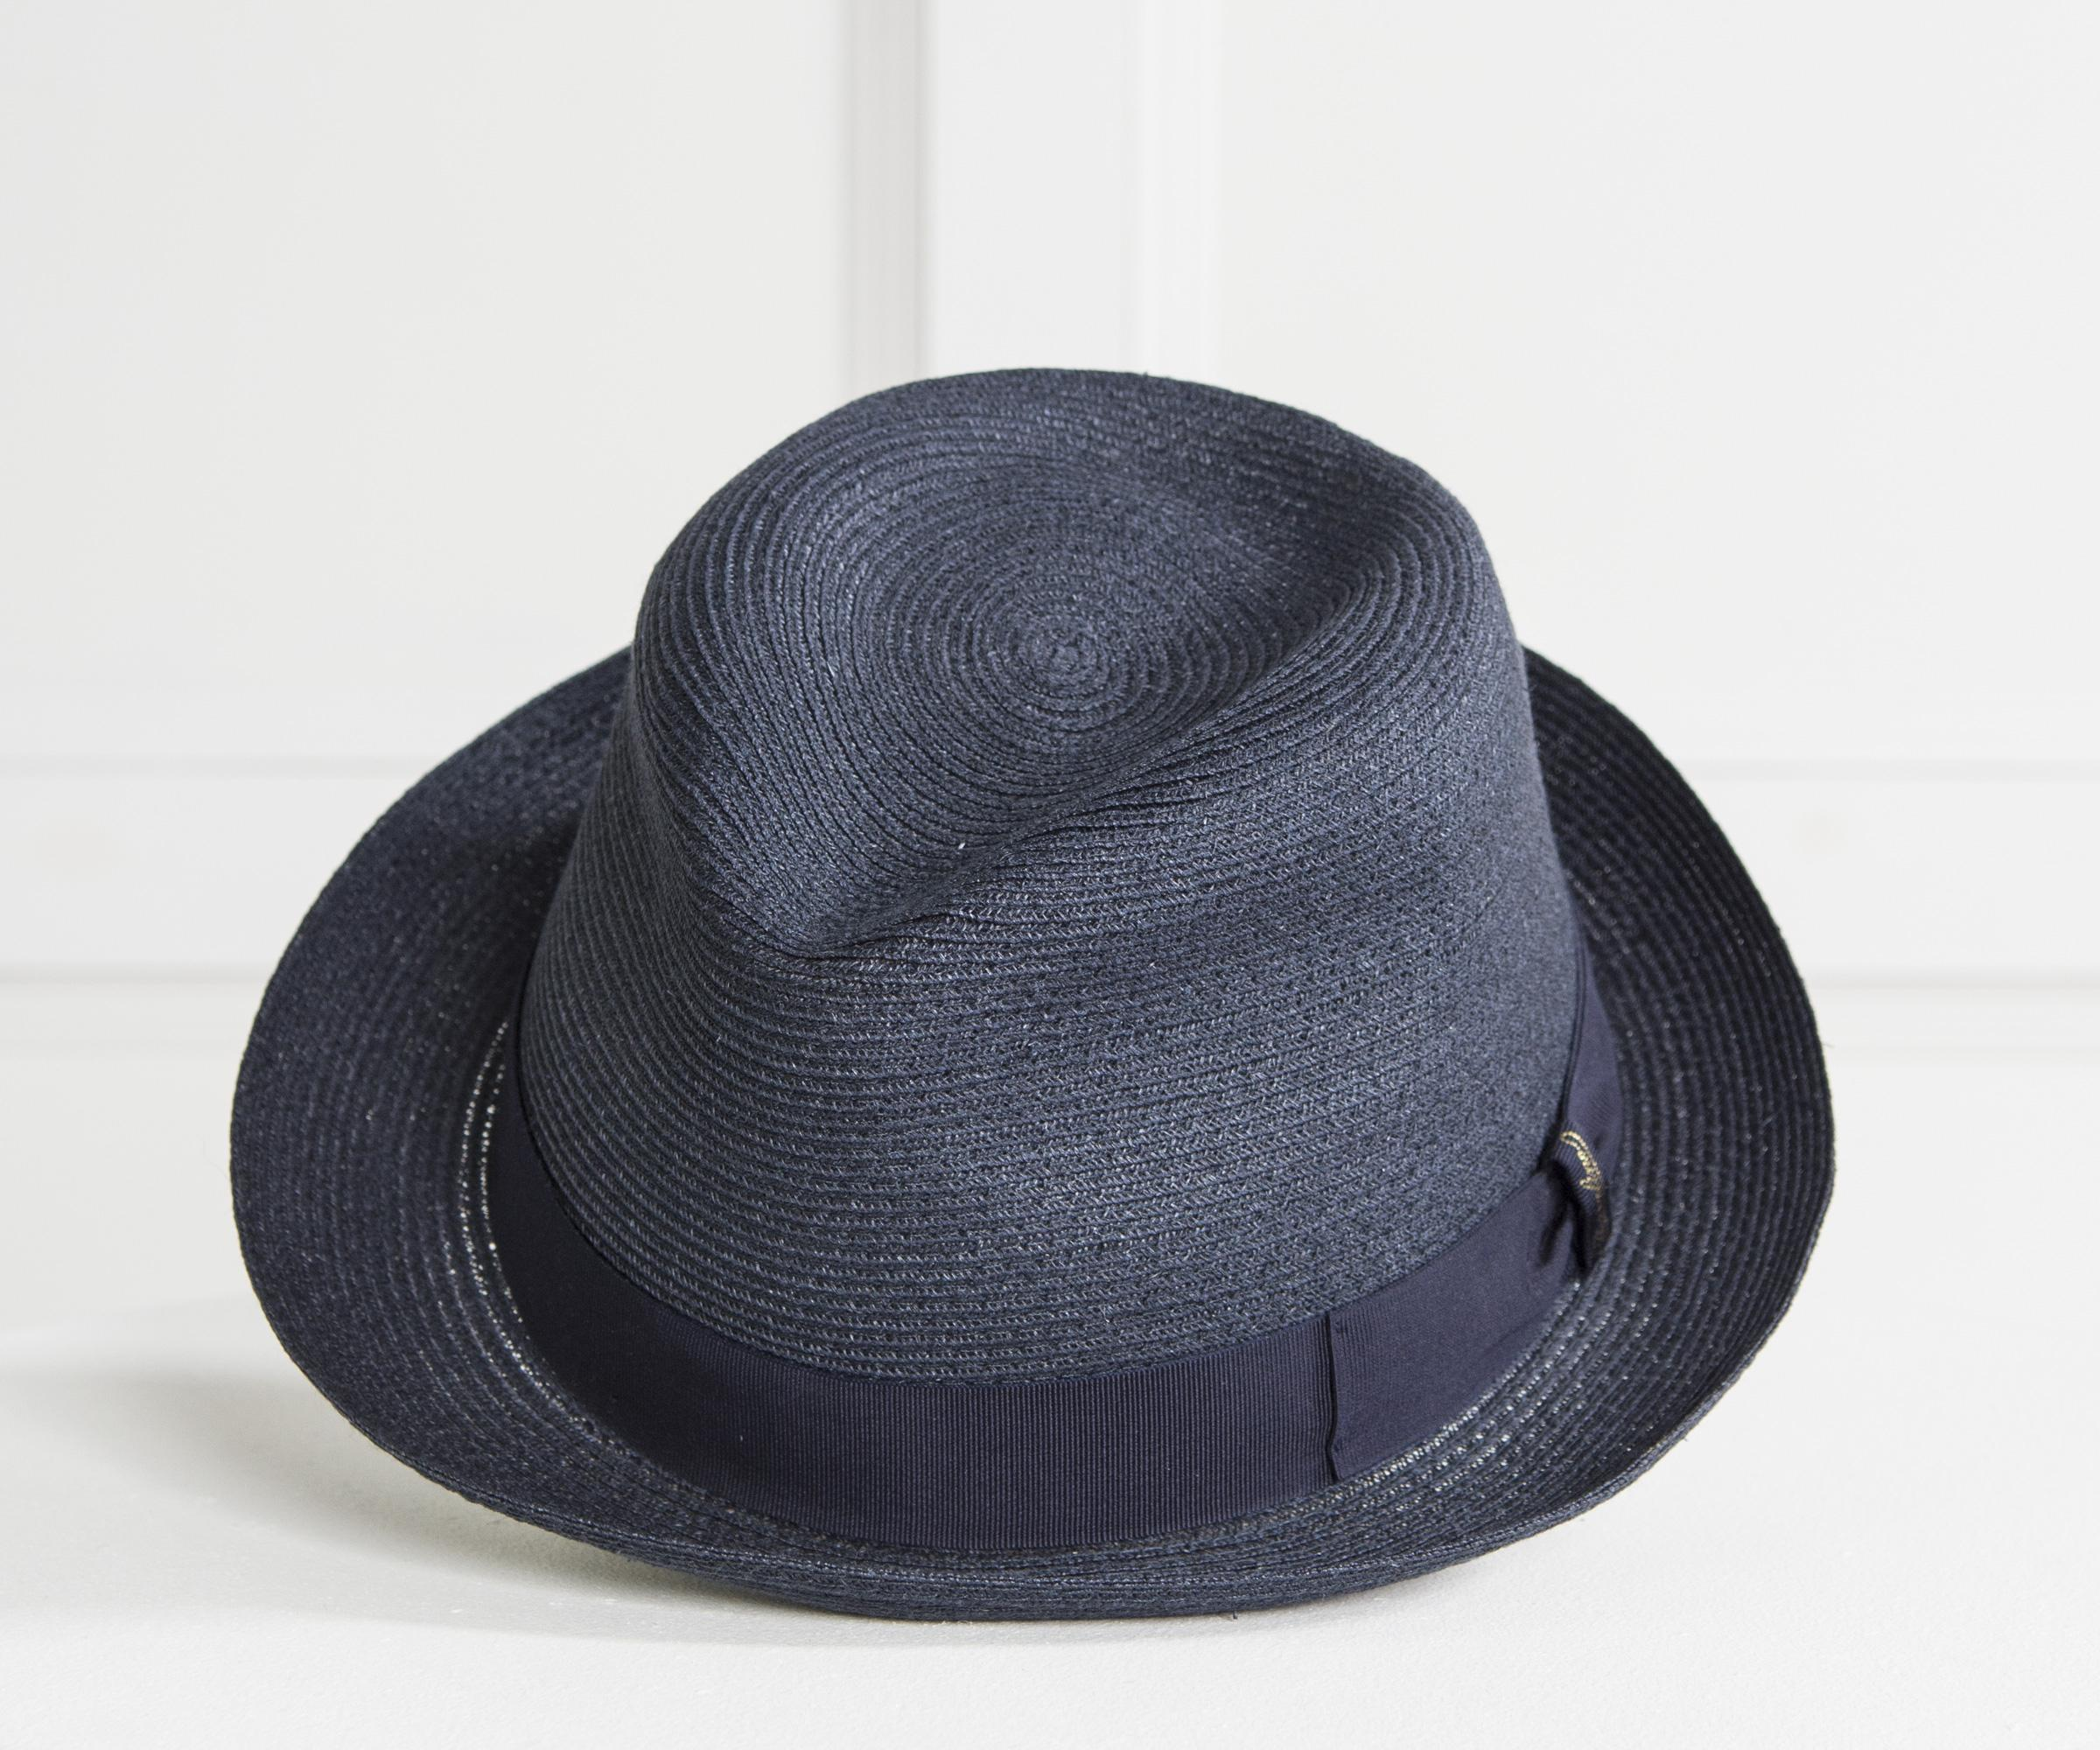 Borsalino  1107  Hemp Trilby Hat Navy in Blue for Men - Lyst f4c382008e24